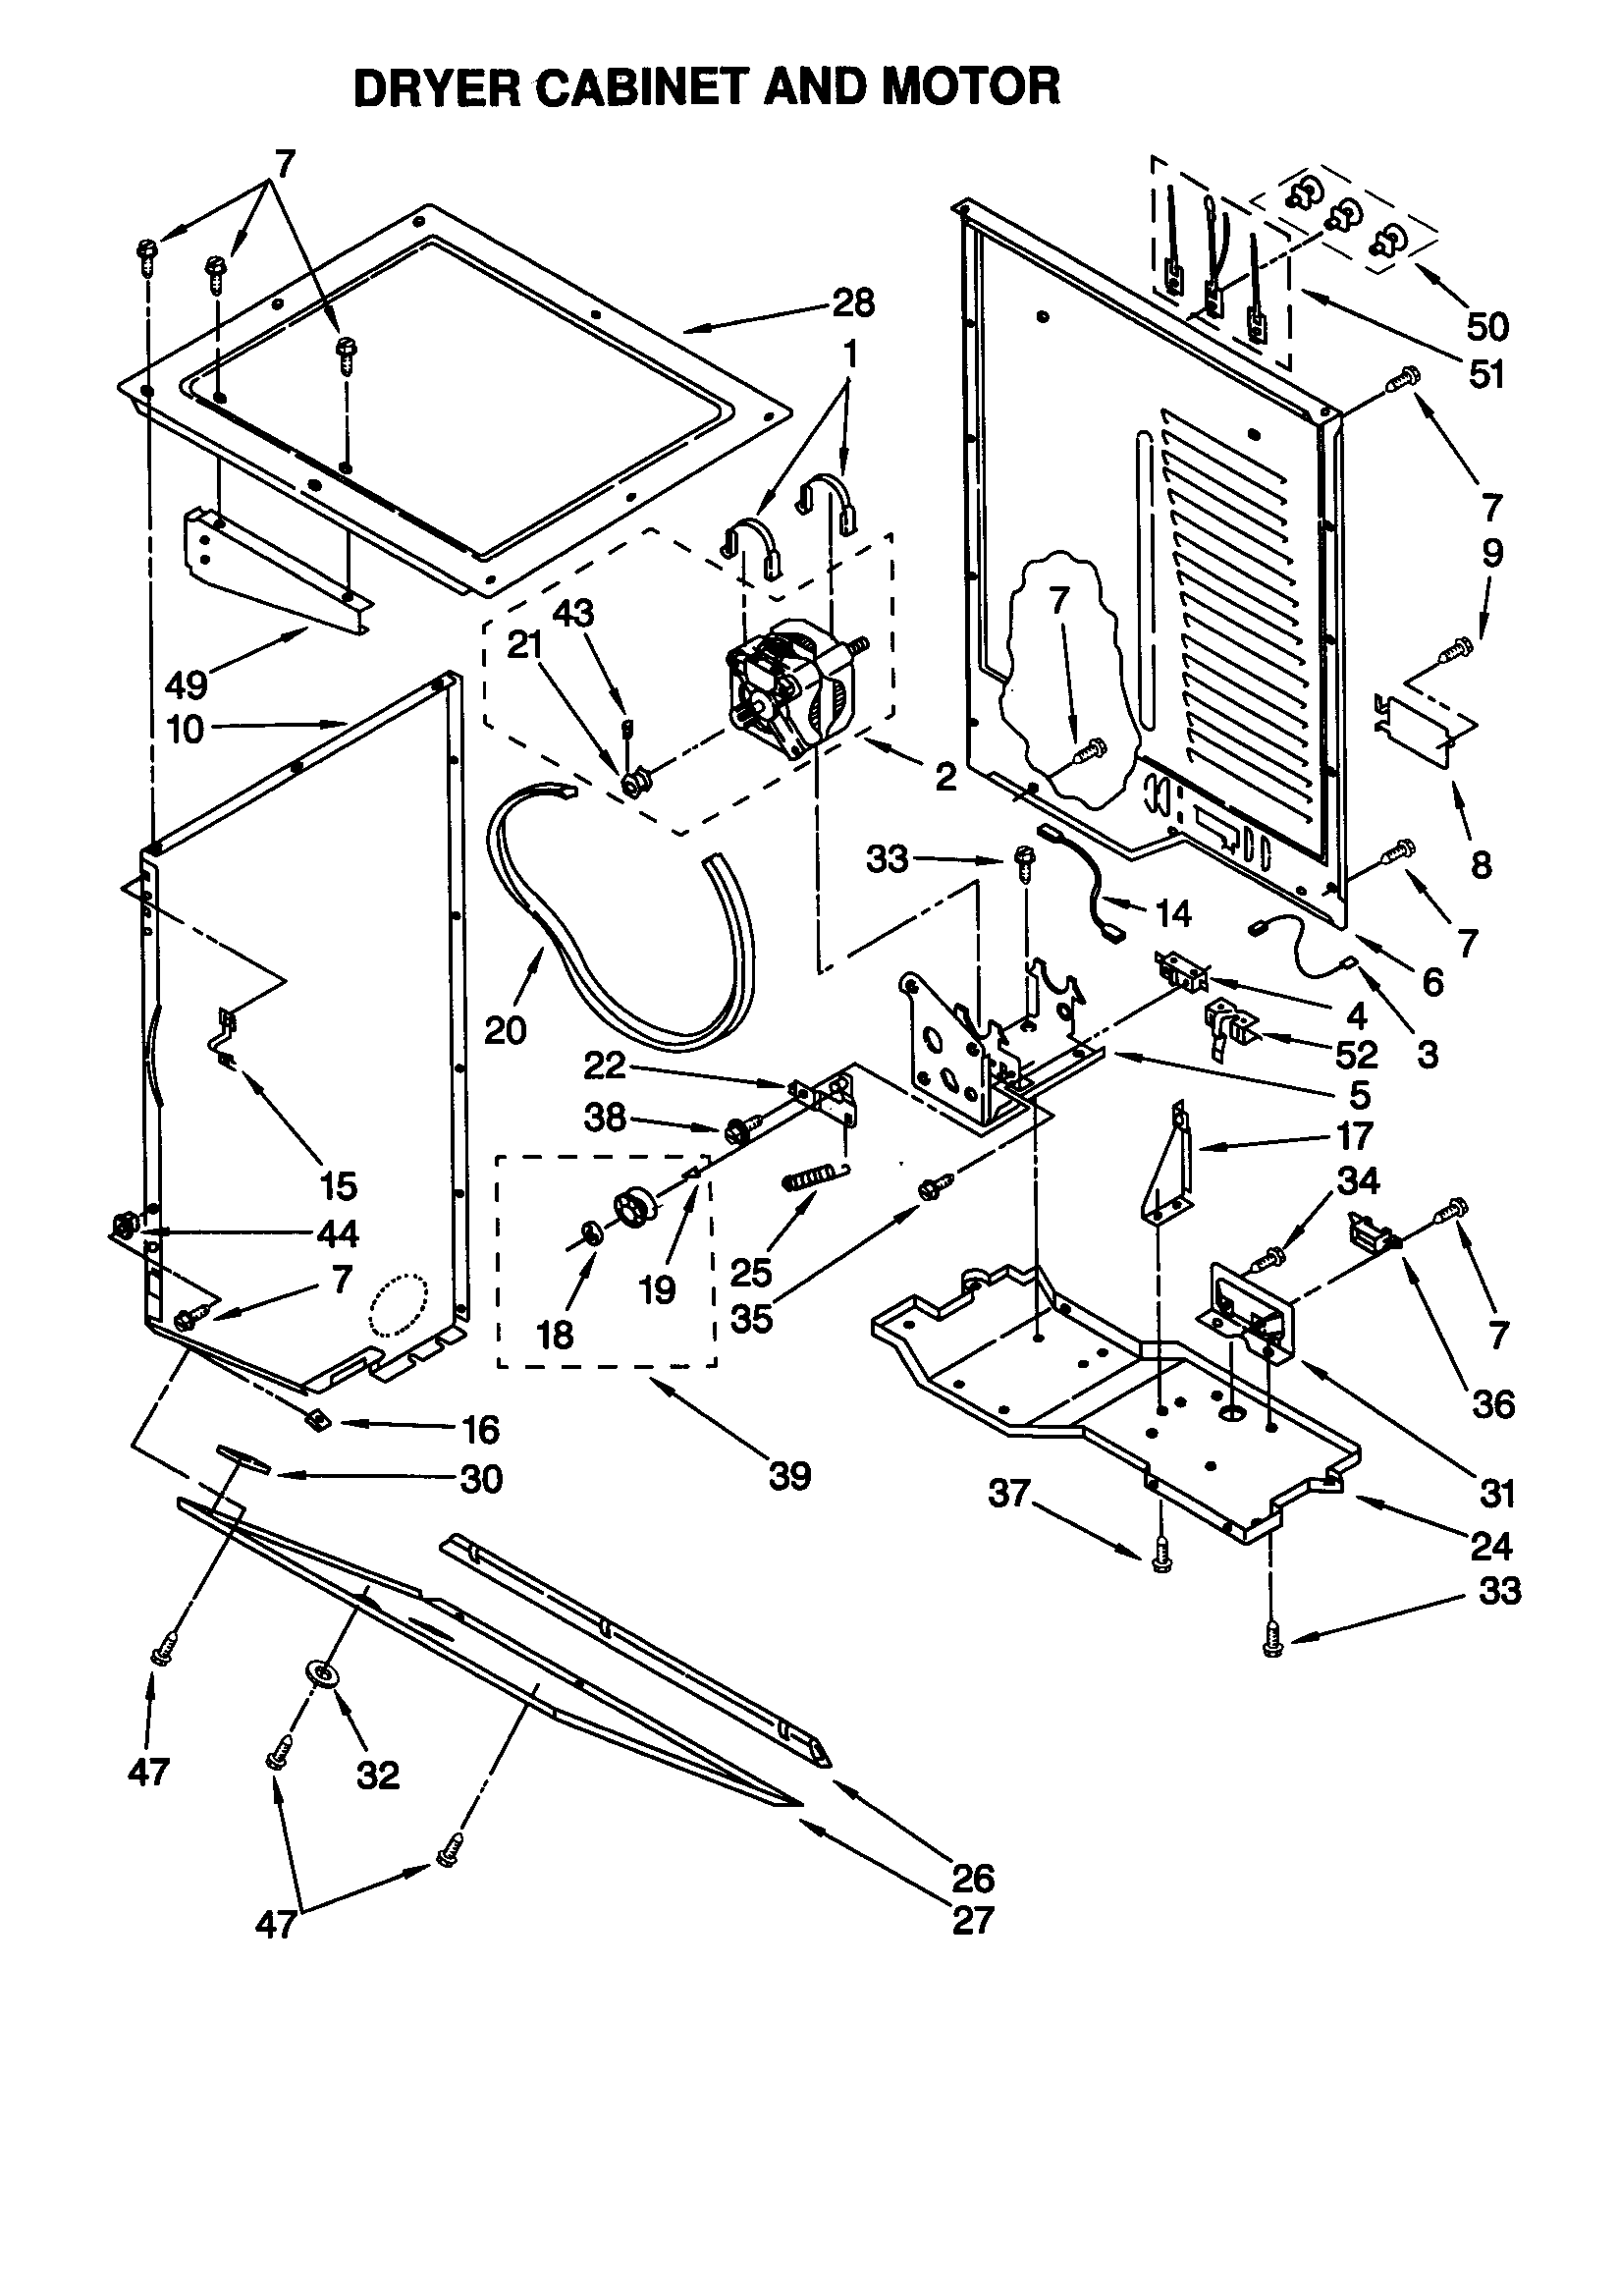 DRYER CABINET AND MOTOR Diagram & Parts List for Model